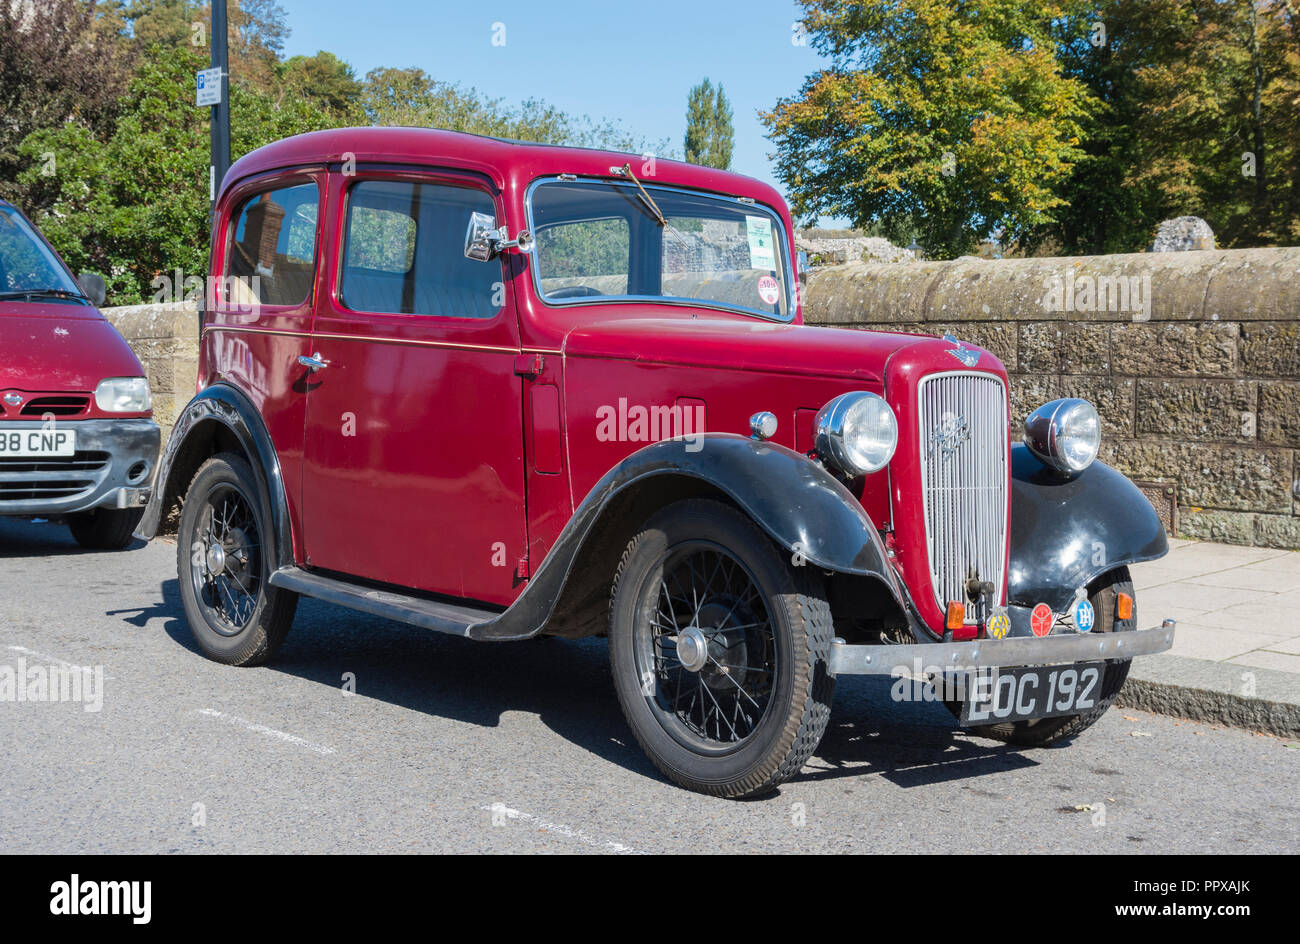 Red Austin Seven (Austin 7) vintage saloon car from 1938 parked by the roadside in the UK. - Stock Image